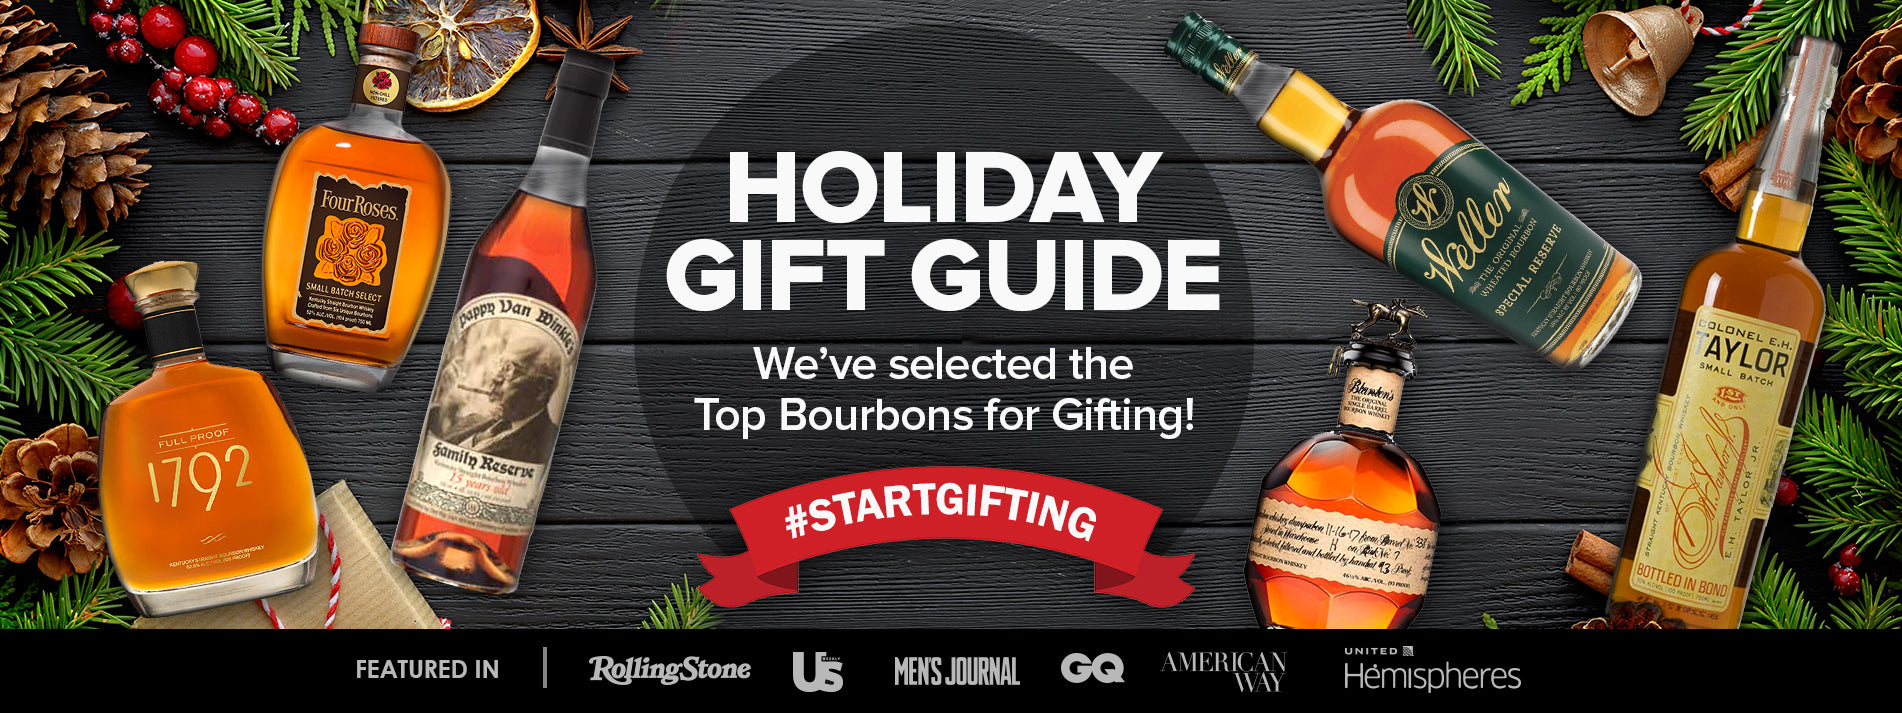 Buy Premium Highly Allocated Bourbon Christmas Gifts from the Bourbon Bunker at CaskCartel.com